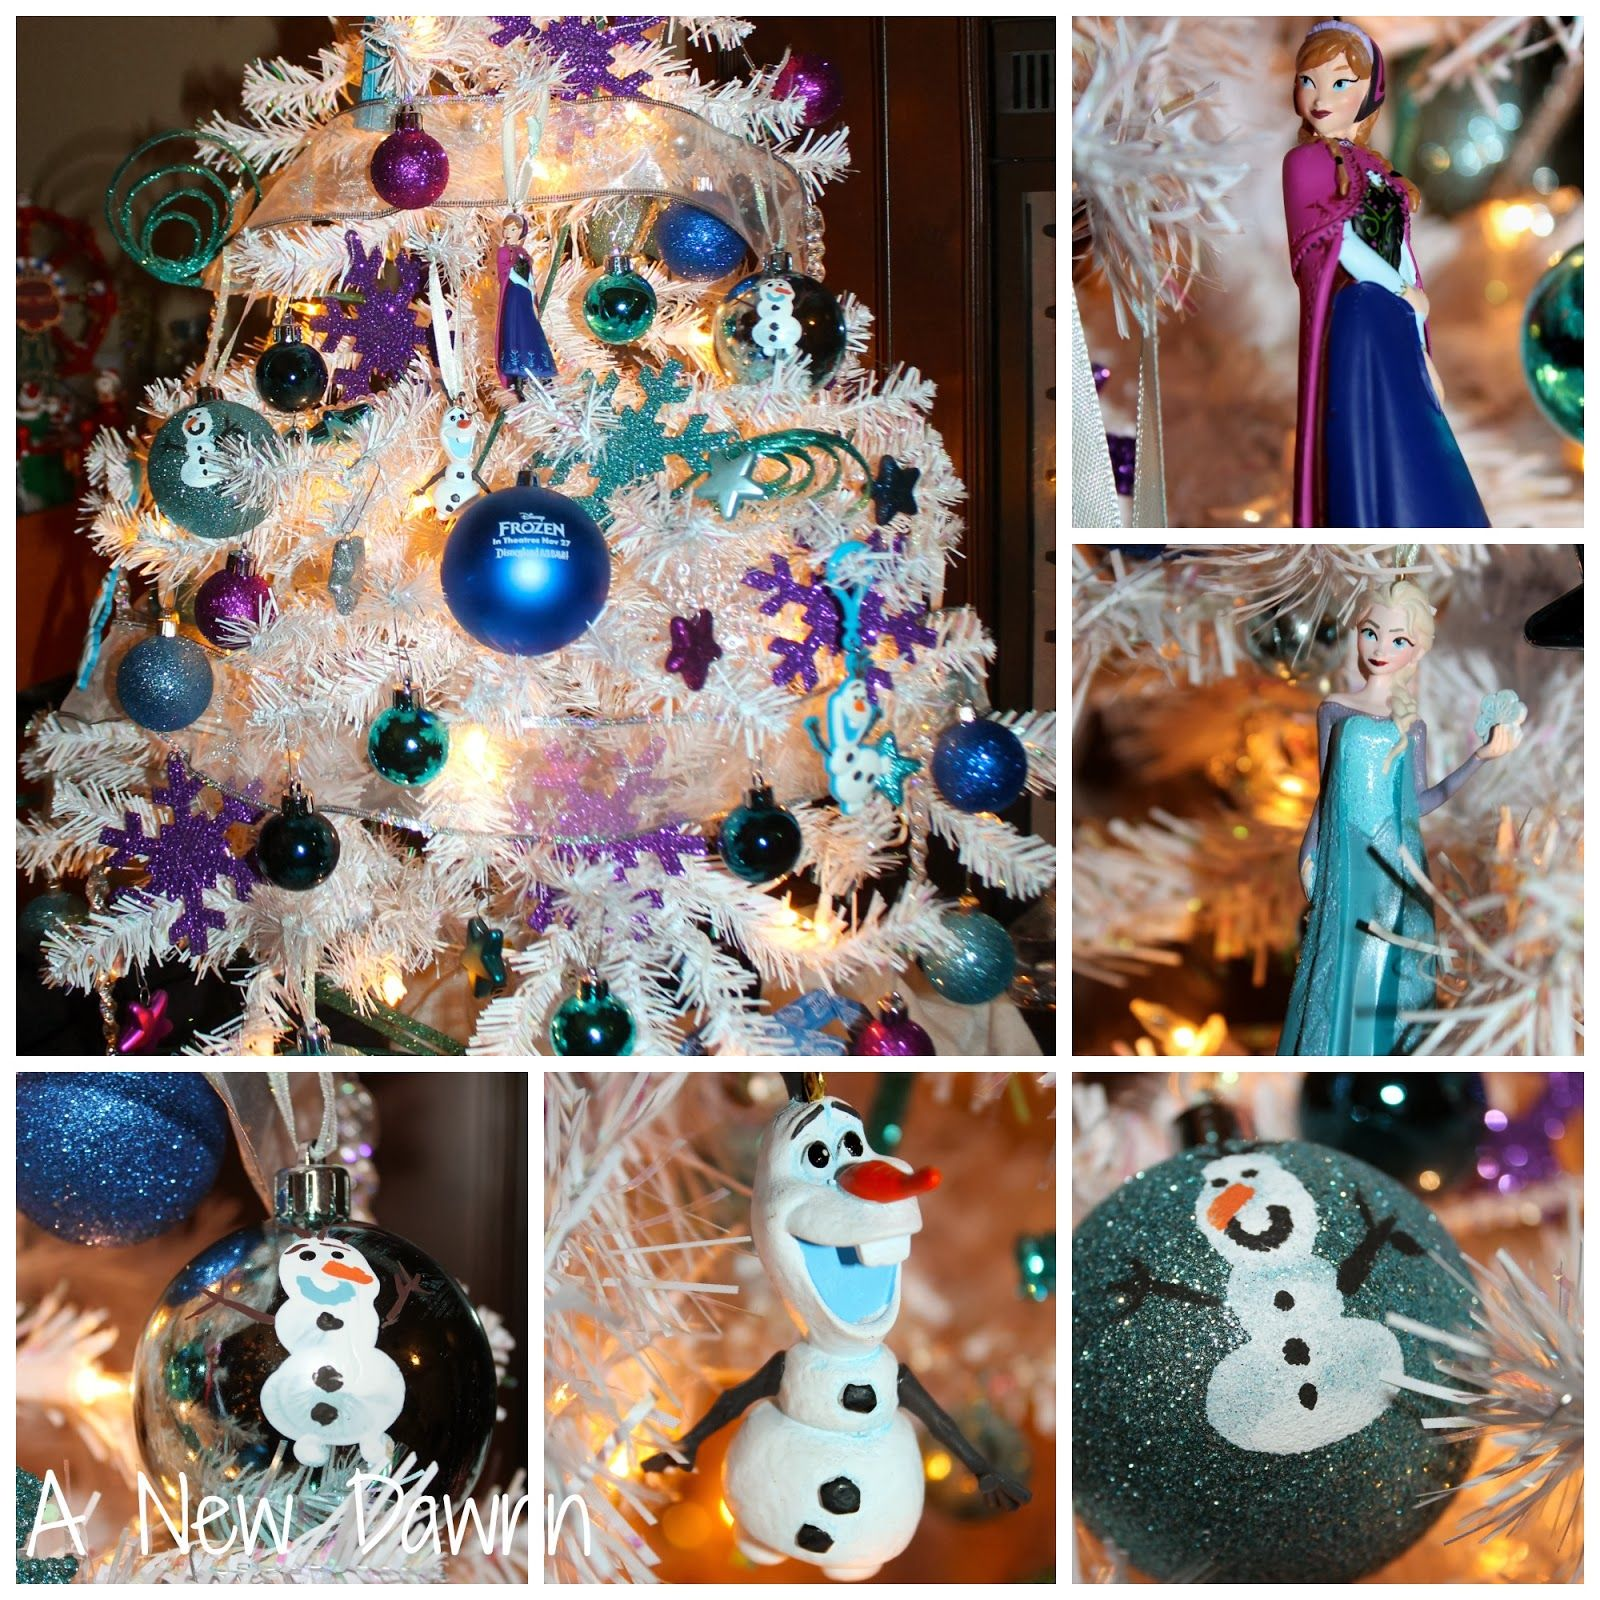 Themed christmas ornaments - Disney S Frozen Themed Christmas Tree With Handmade Ornaments Included